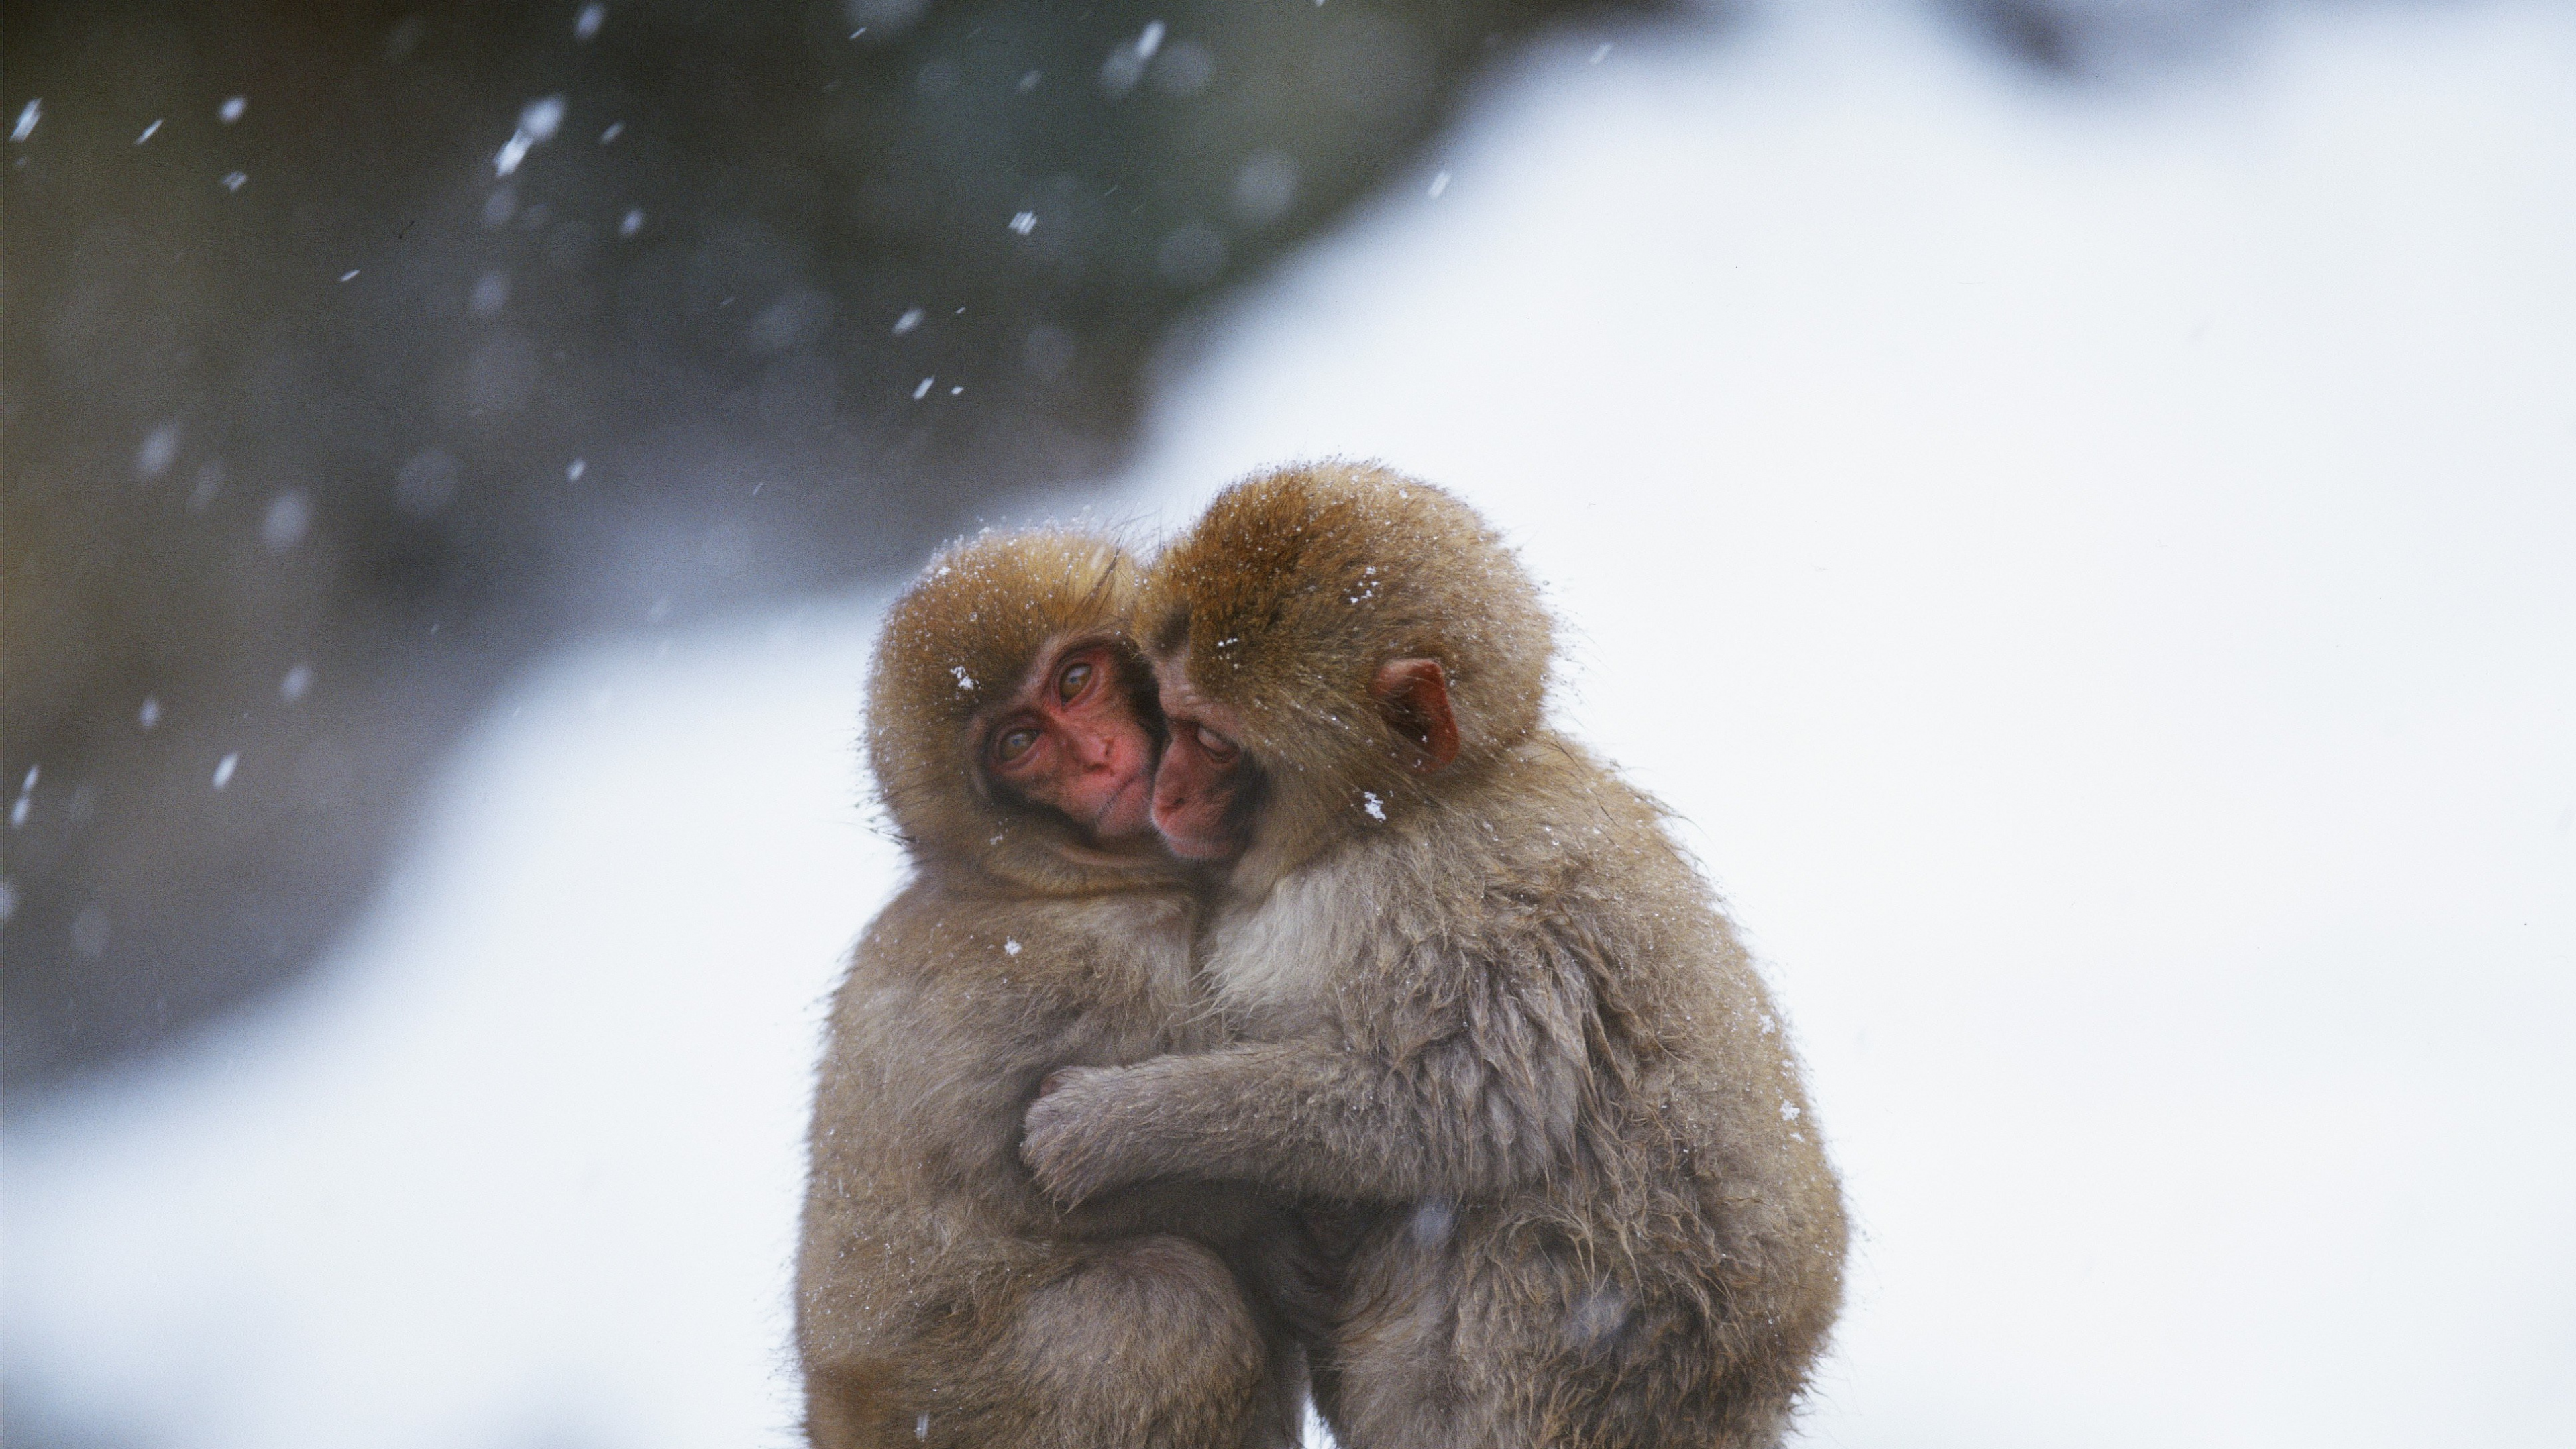 Girls Of The Wilds Wallpaper Embrace Between Two Monkeys In A Cold Day